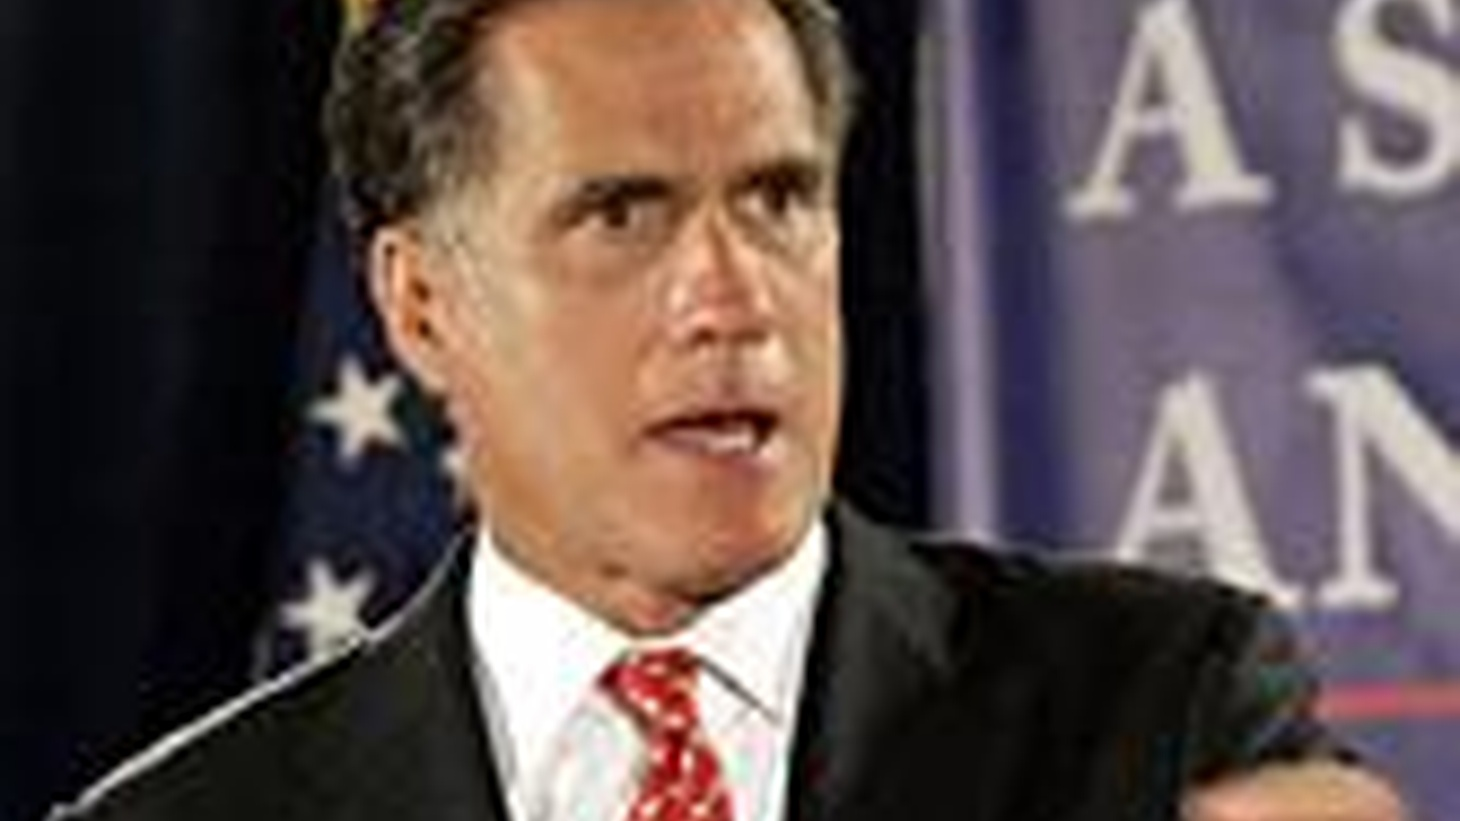 Nearly forty-seven years after John F. Kennedy tackled the religion question in his successful bid for the presidency, a candidate's religion is once again emerging as a significant campaign issue. Can Republican Mitt Romney make voters comfortable with the fact that he's a practicing mormon? On Reporter's Notebook, how NOT to ask questions.